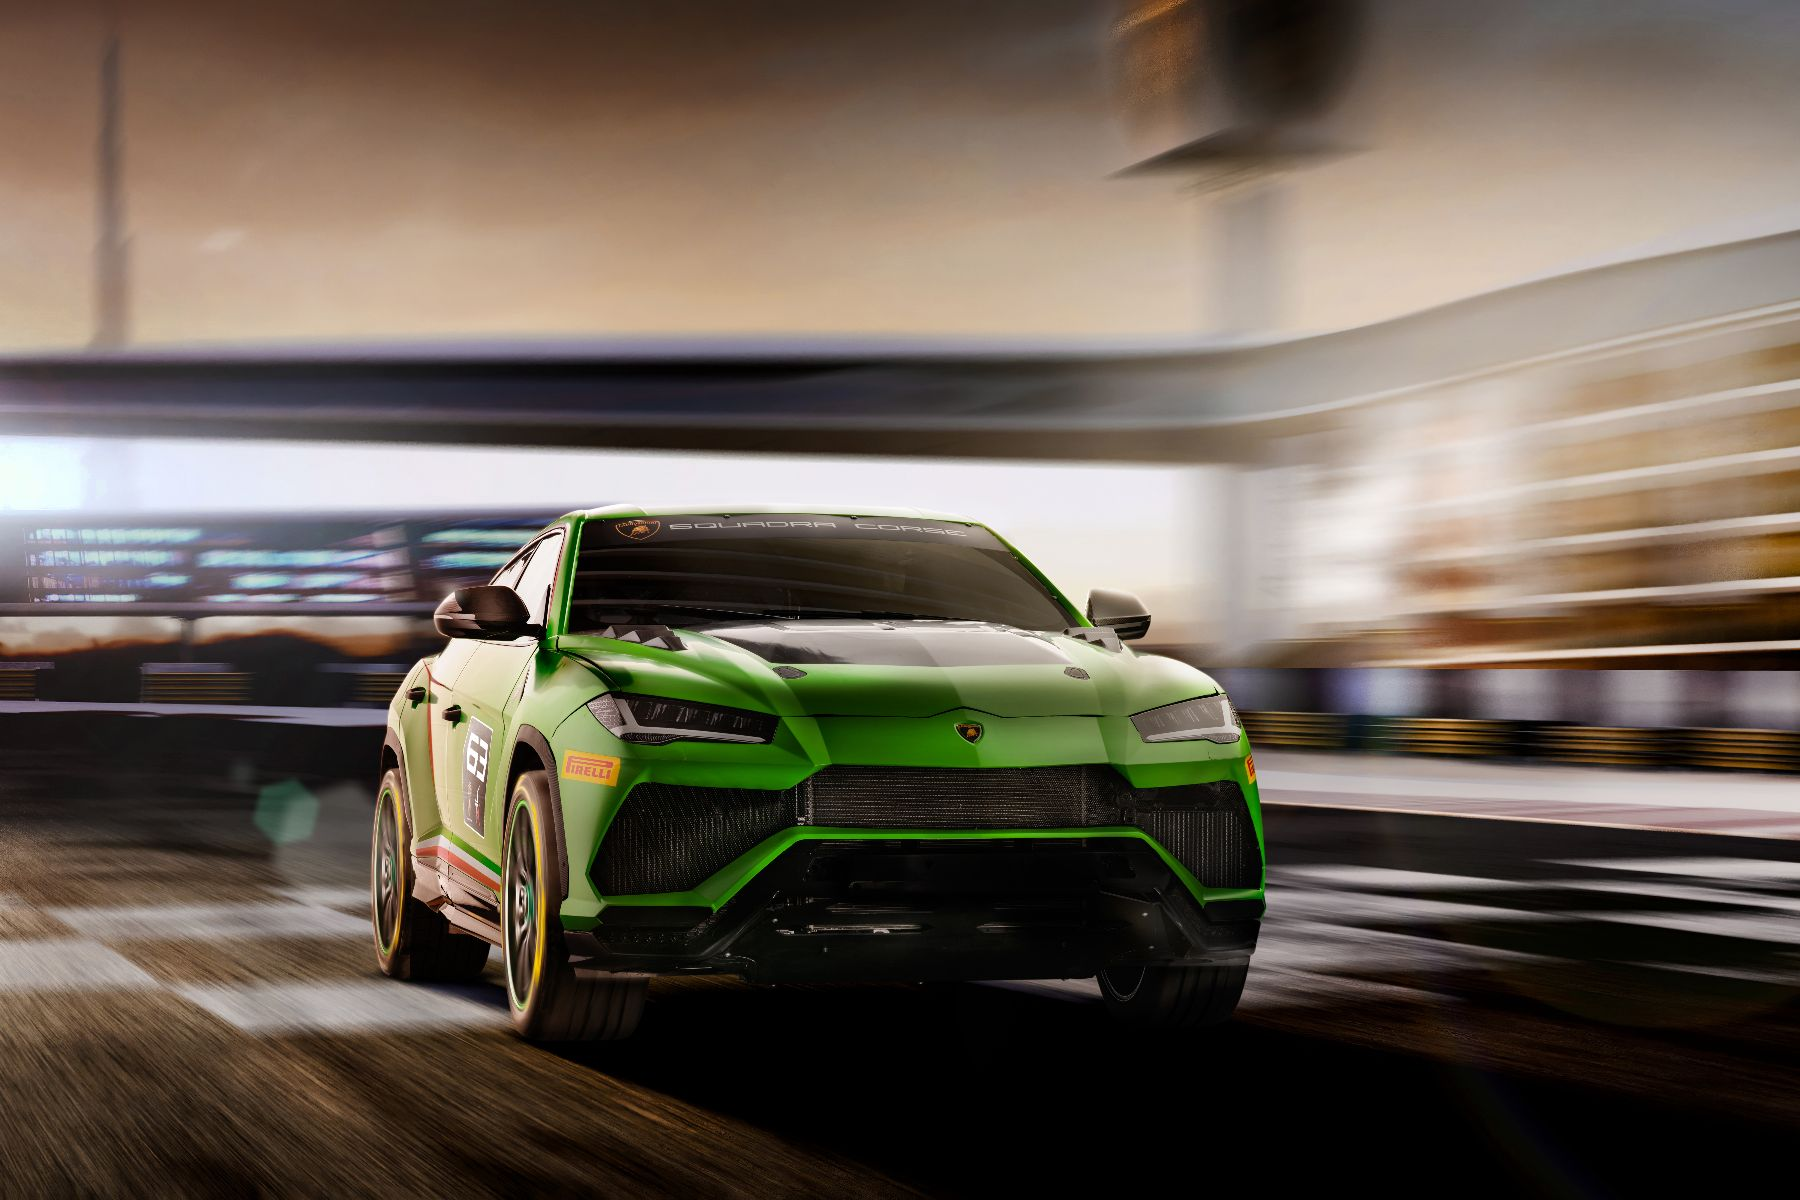 Lamborghini is sending the Urus SUV racing in 2020